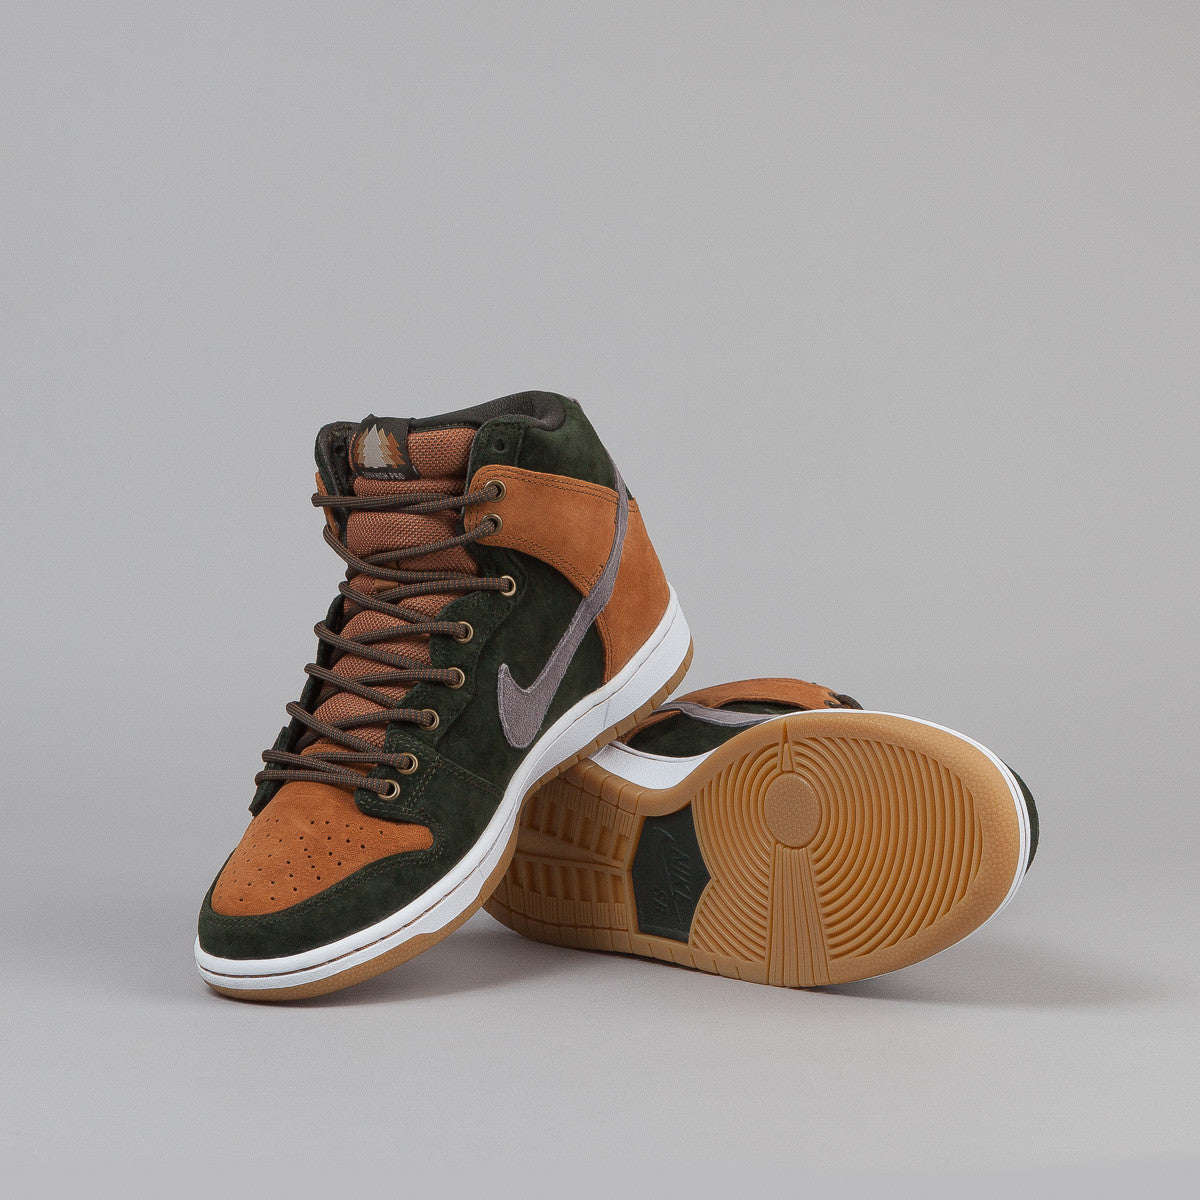 Nike SB Dunk High Premium Home Grown QS - Sequoia / Cool Grey - Ale Brown